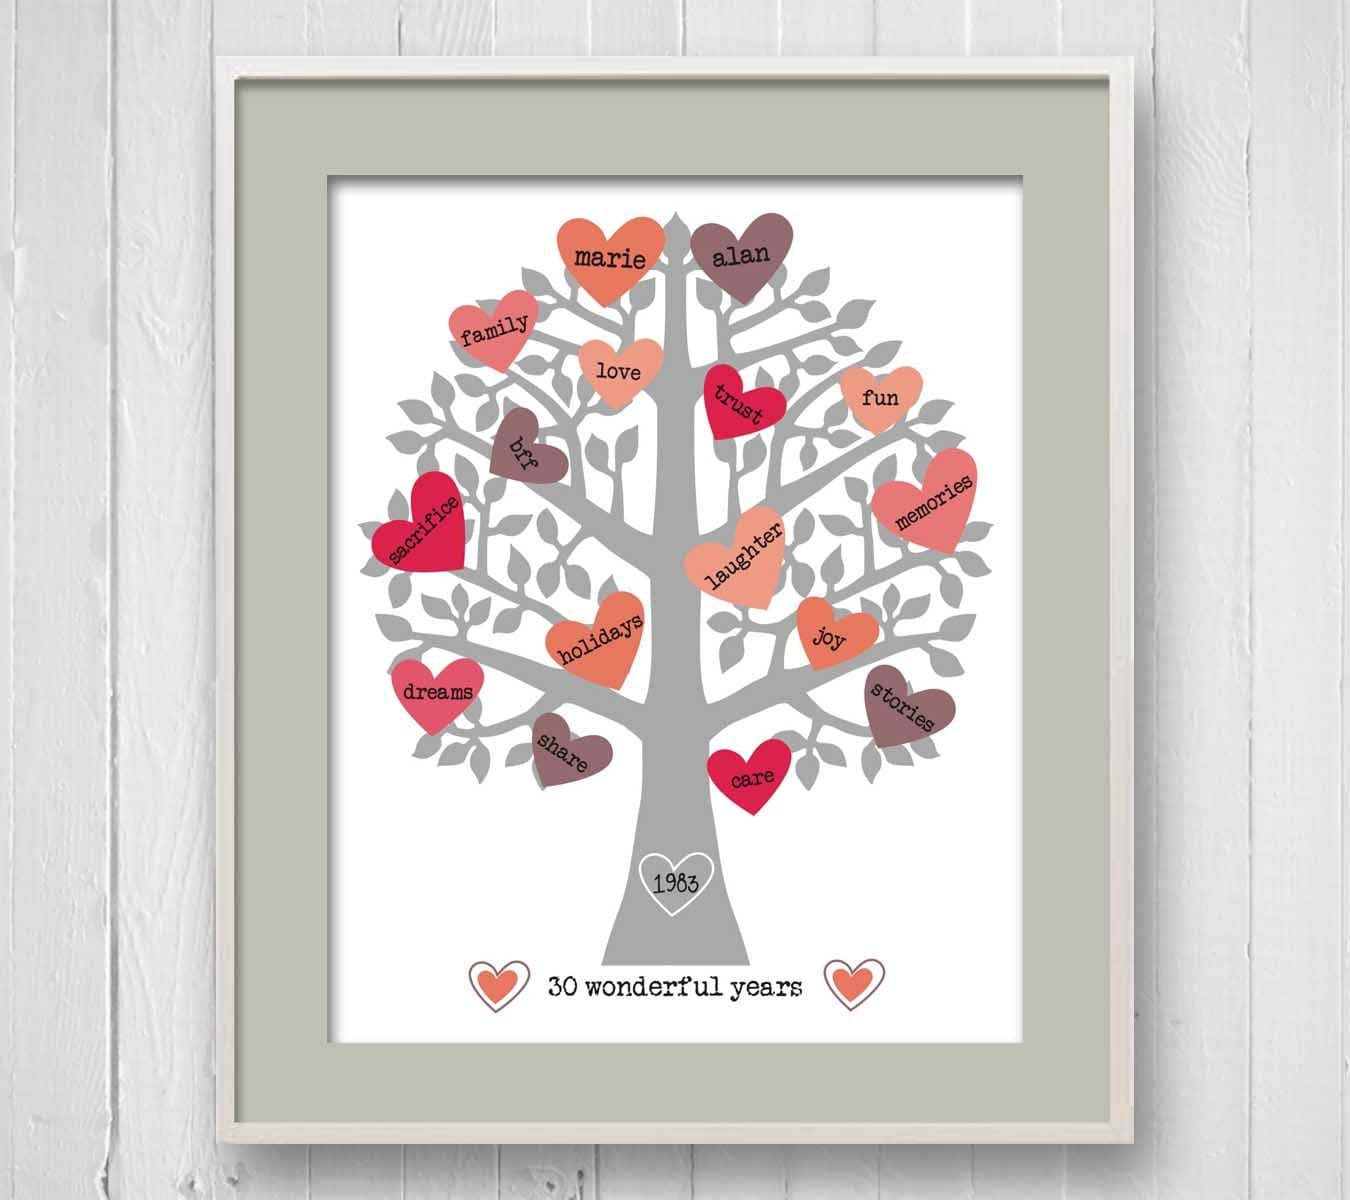 Wedding Anniversary Gifts Silver Wedding Anniversary Gifts For Parents